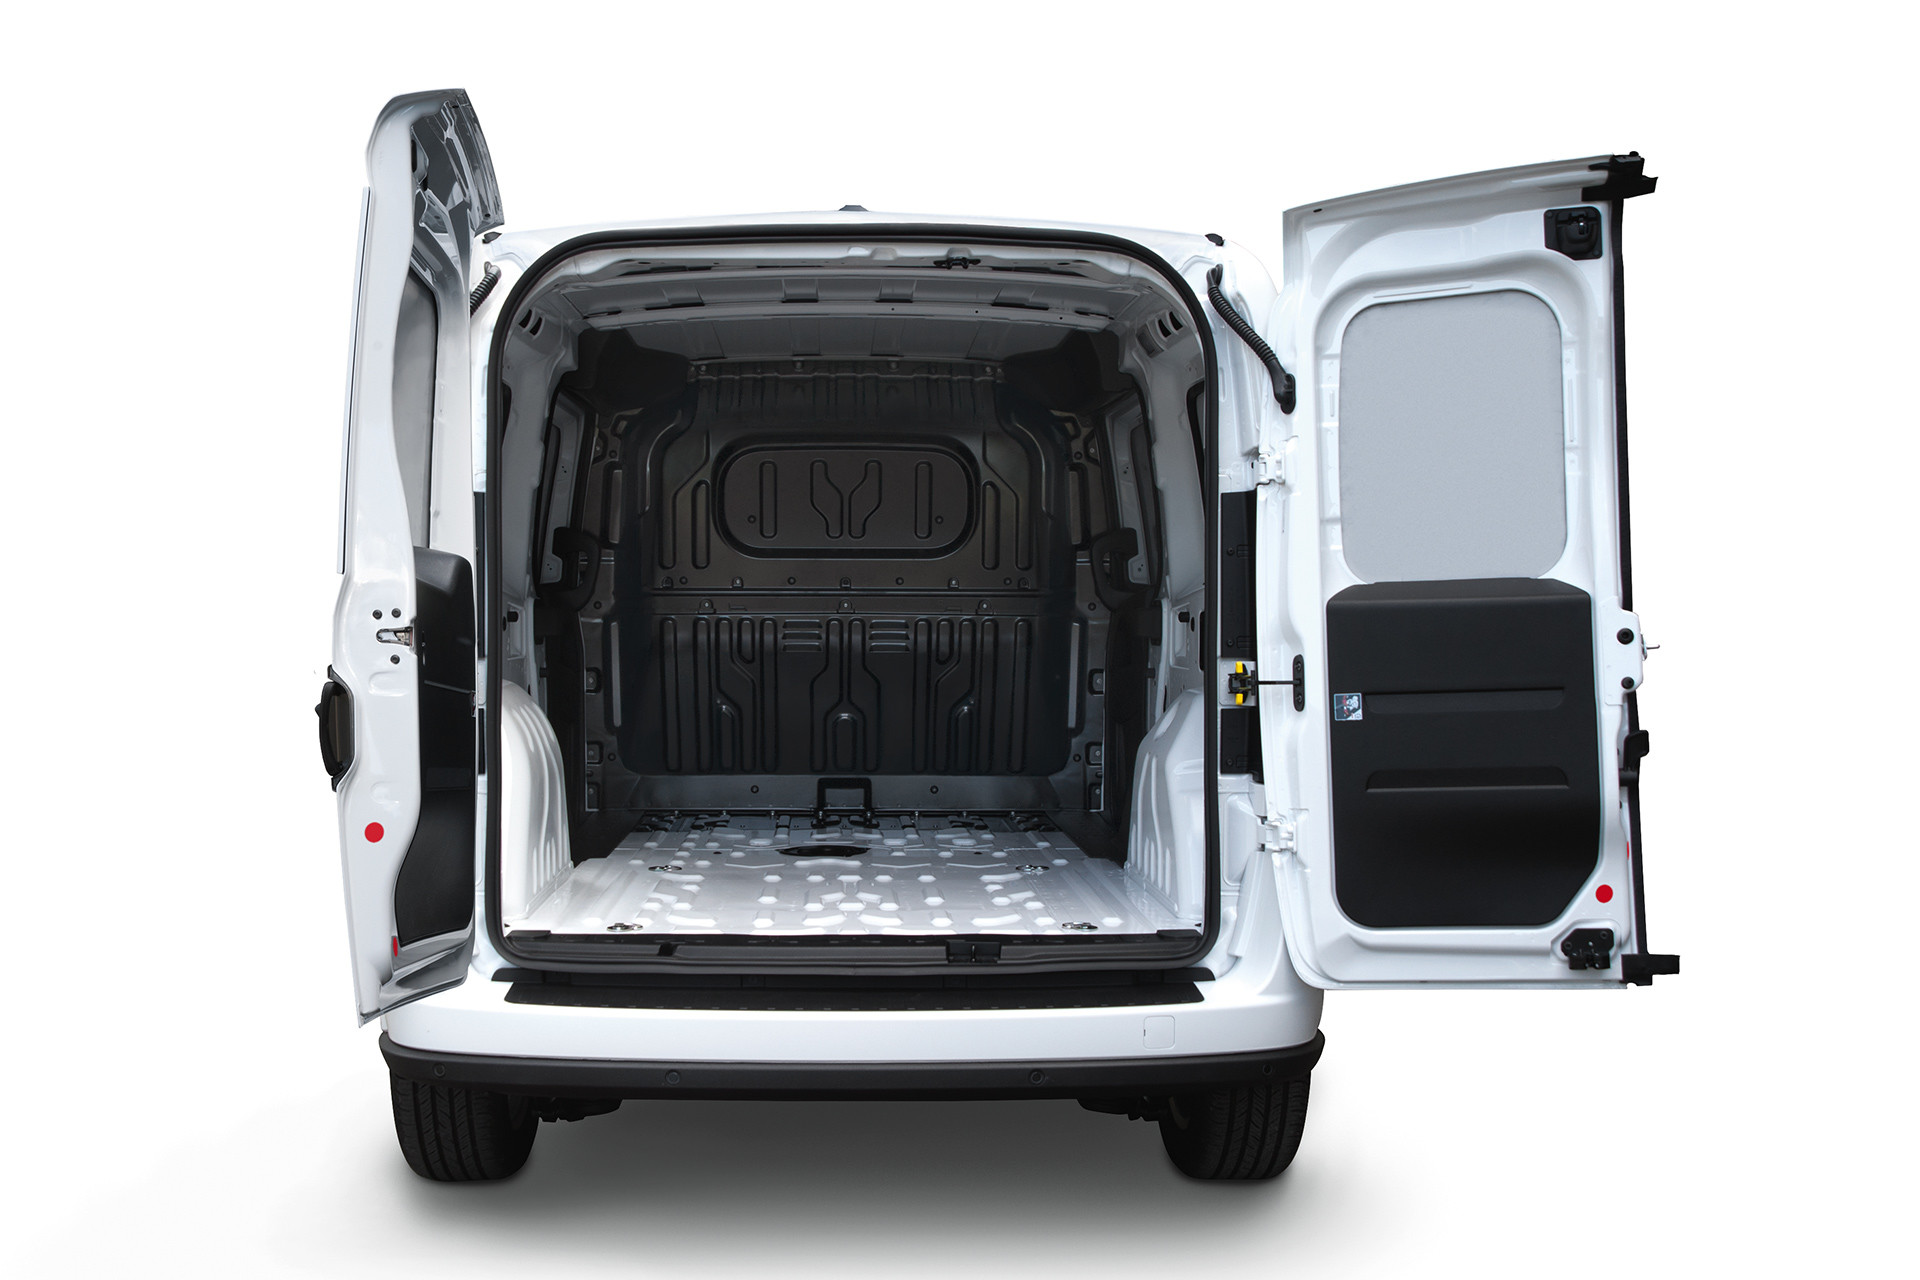 2019 Ram ProMaster City view of cargo area with rear doors open